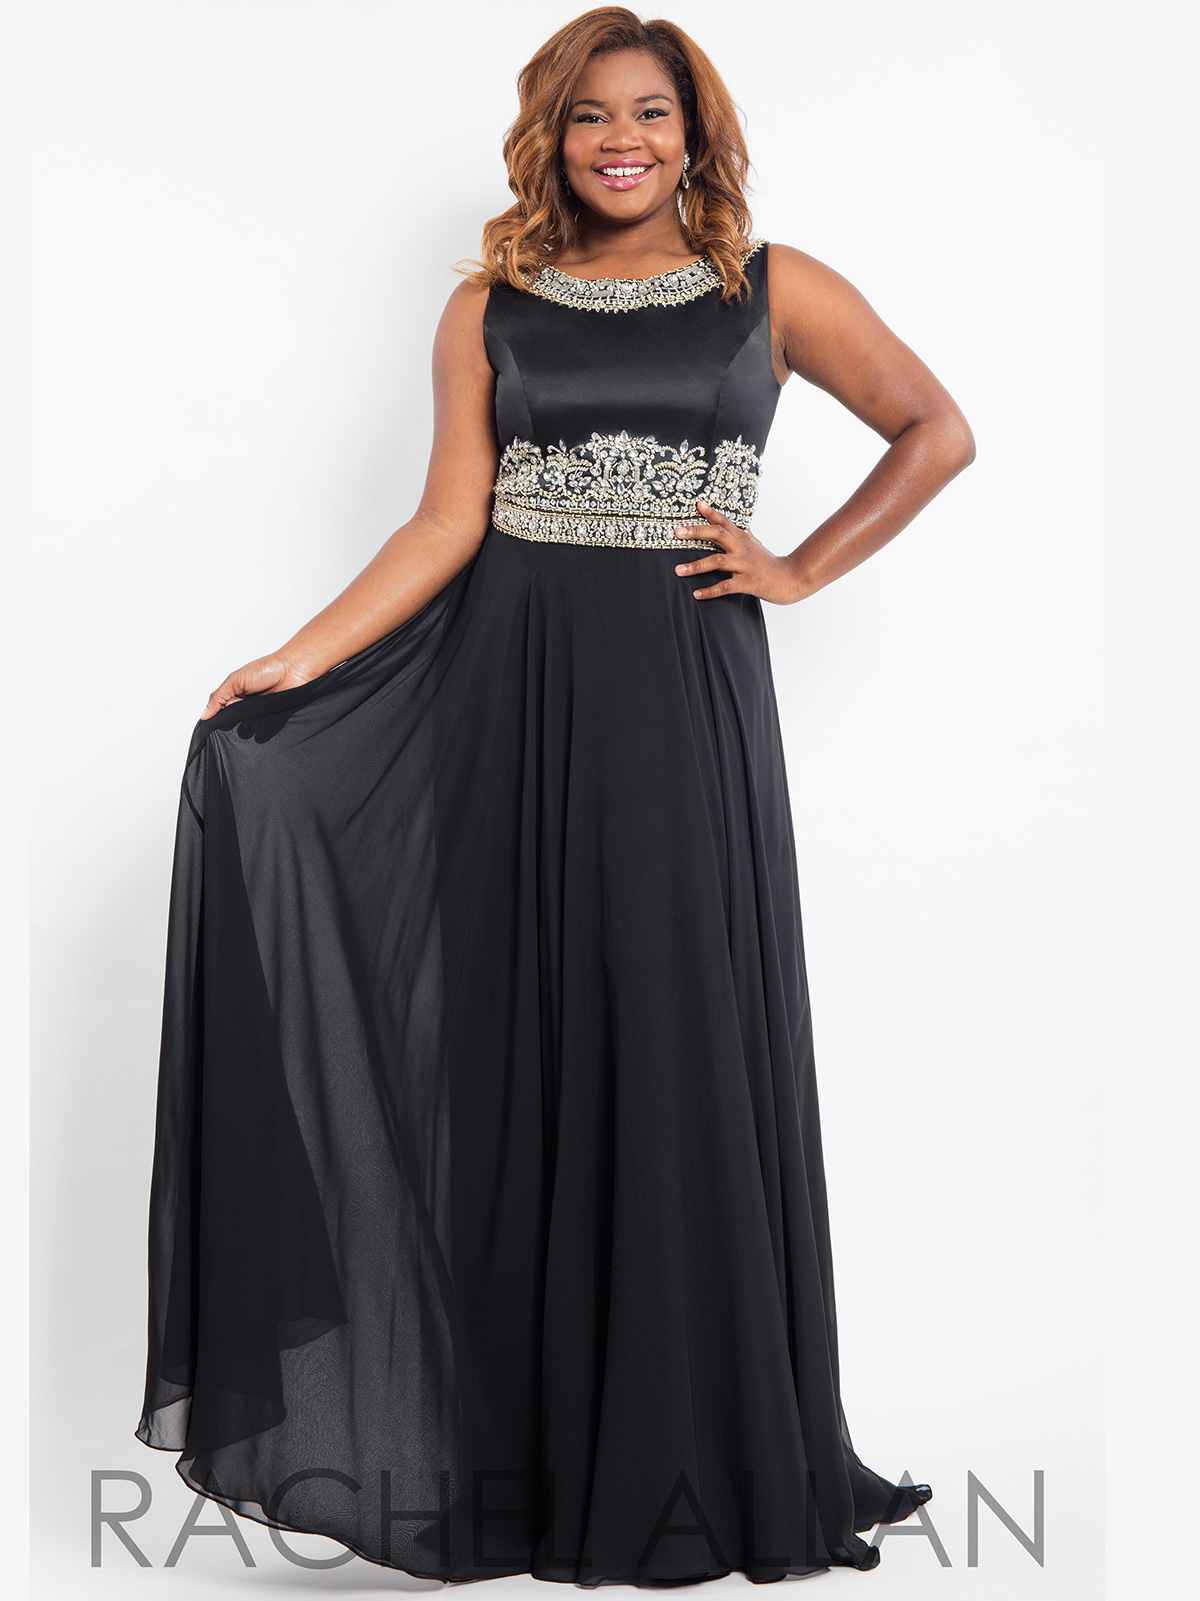 Black and gold plus size prom dresses - Best dresses collection